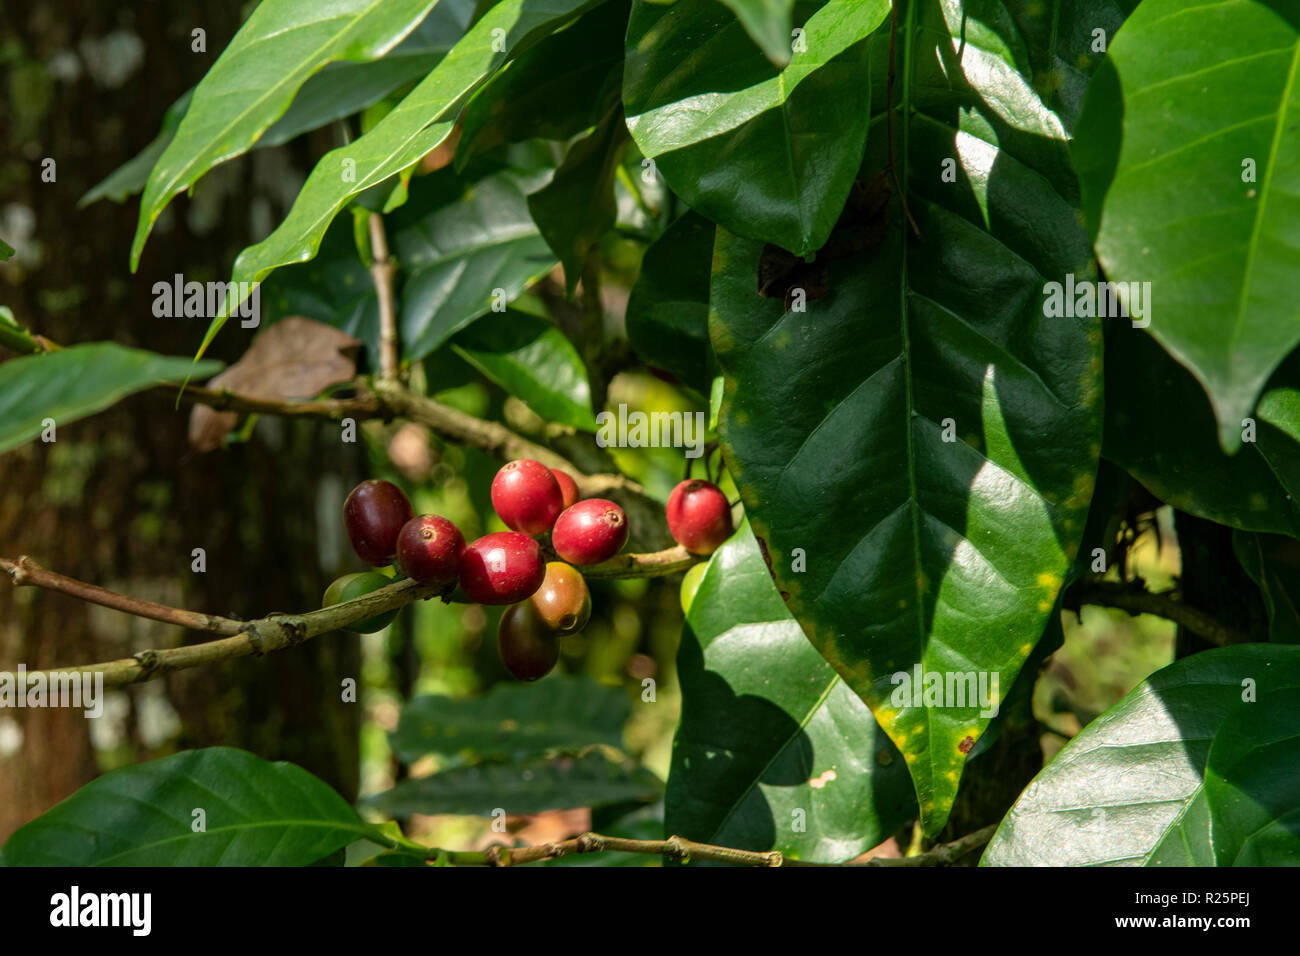 Coffea canephora, Robusta Coffee Beans at Periyar, Kerala, India - Stock Image